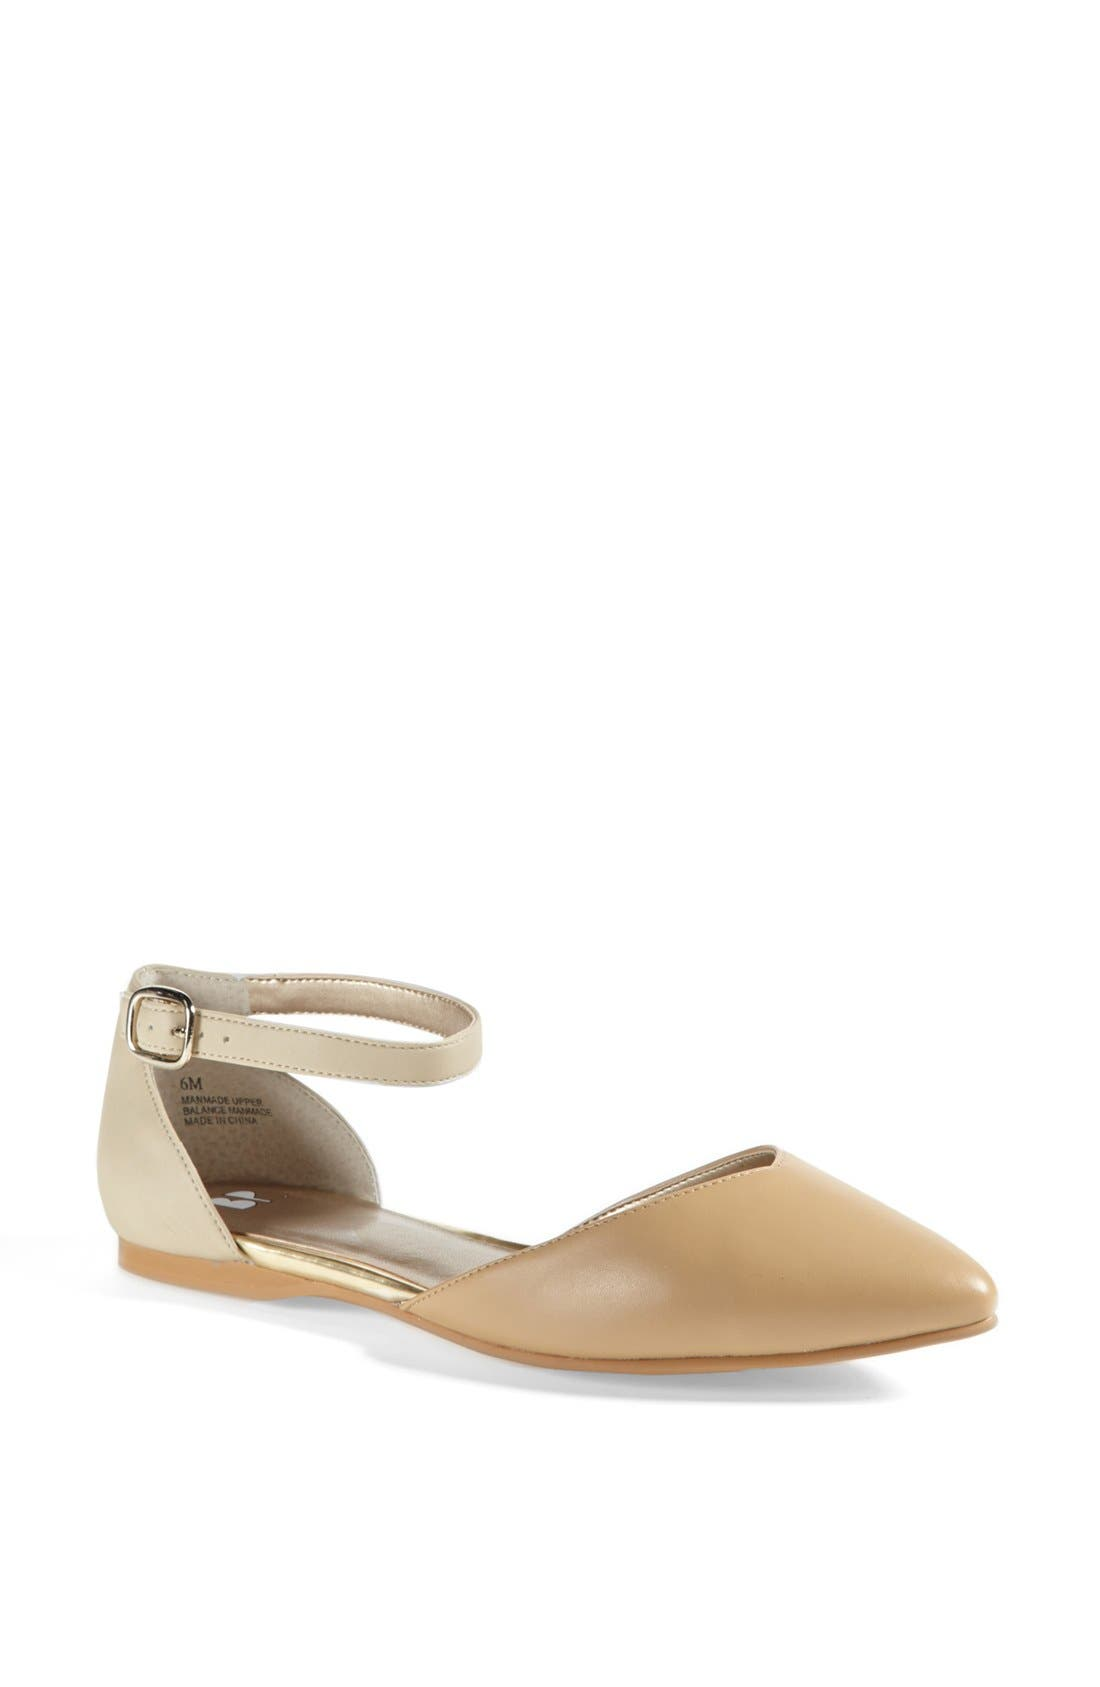 Alternate Image 1 Selected - BP. 'Gillie' Ankle Strap Flat